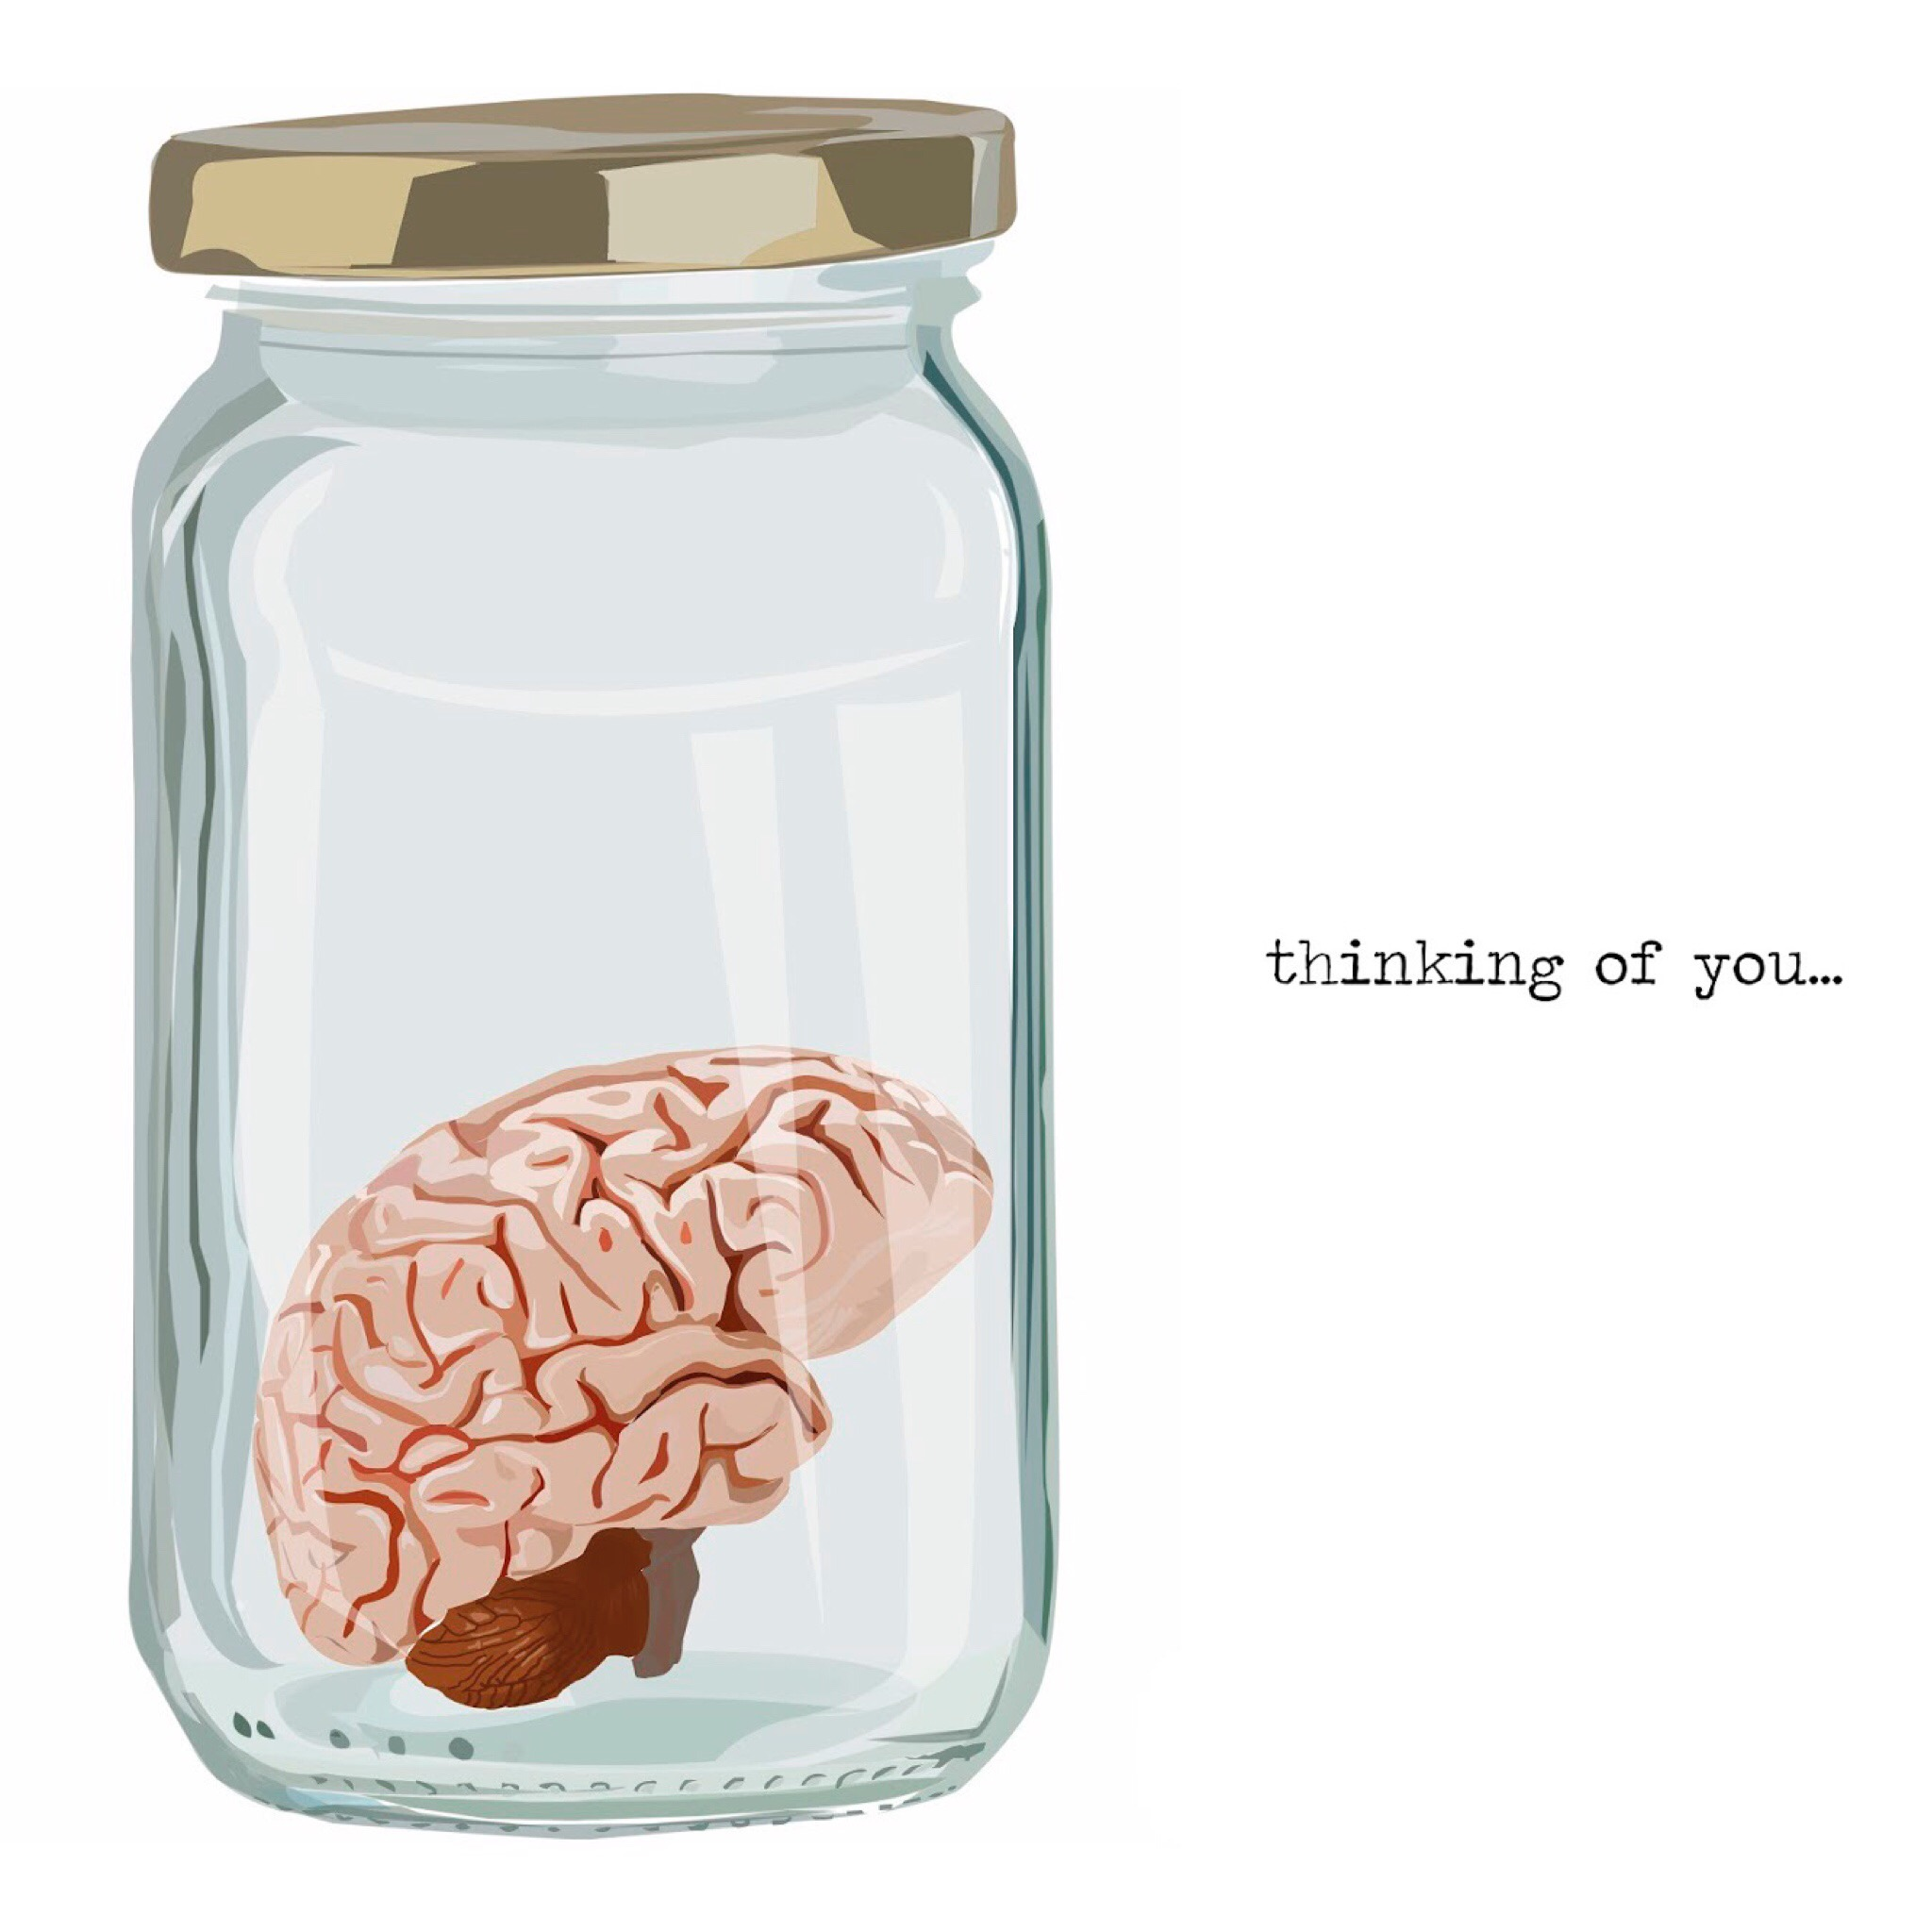 thinking of you.jpg